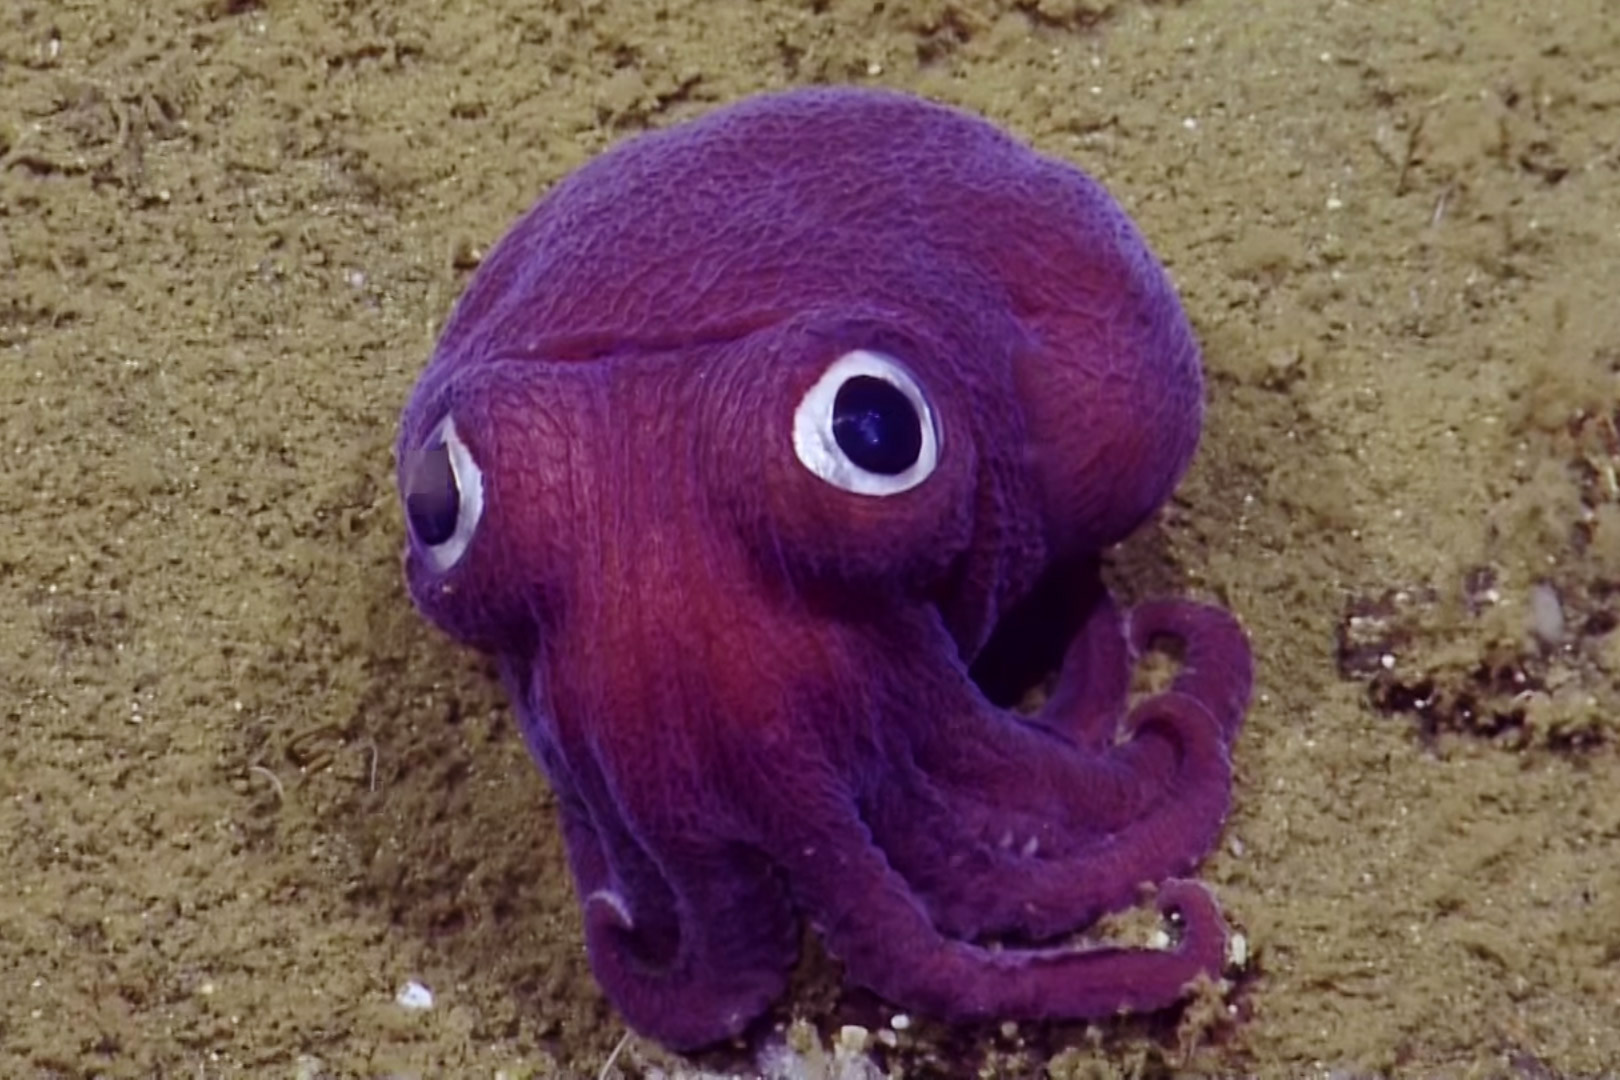 The friendly-looking Rossia pacifica - or 'stubby squid' - resembles both an octopus and a squid, but is in fact more closely related to cuttlefish